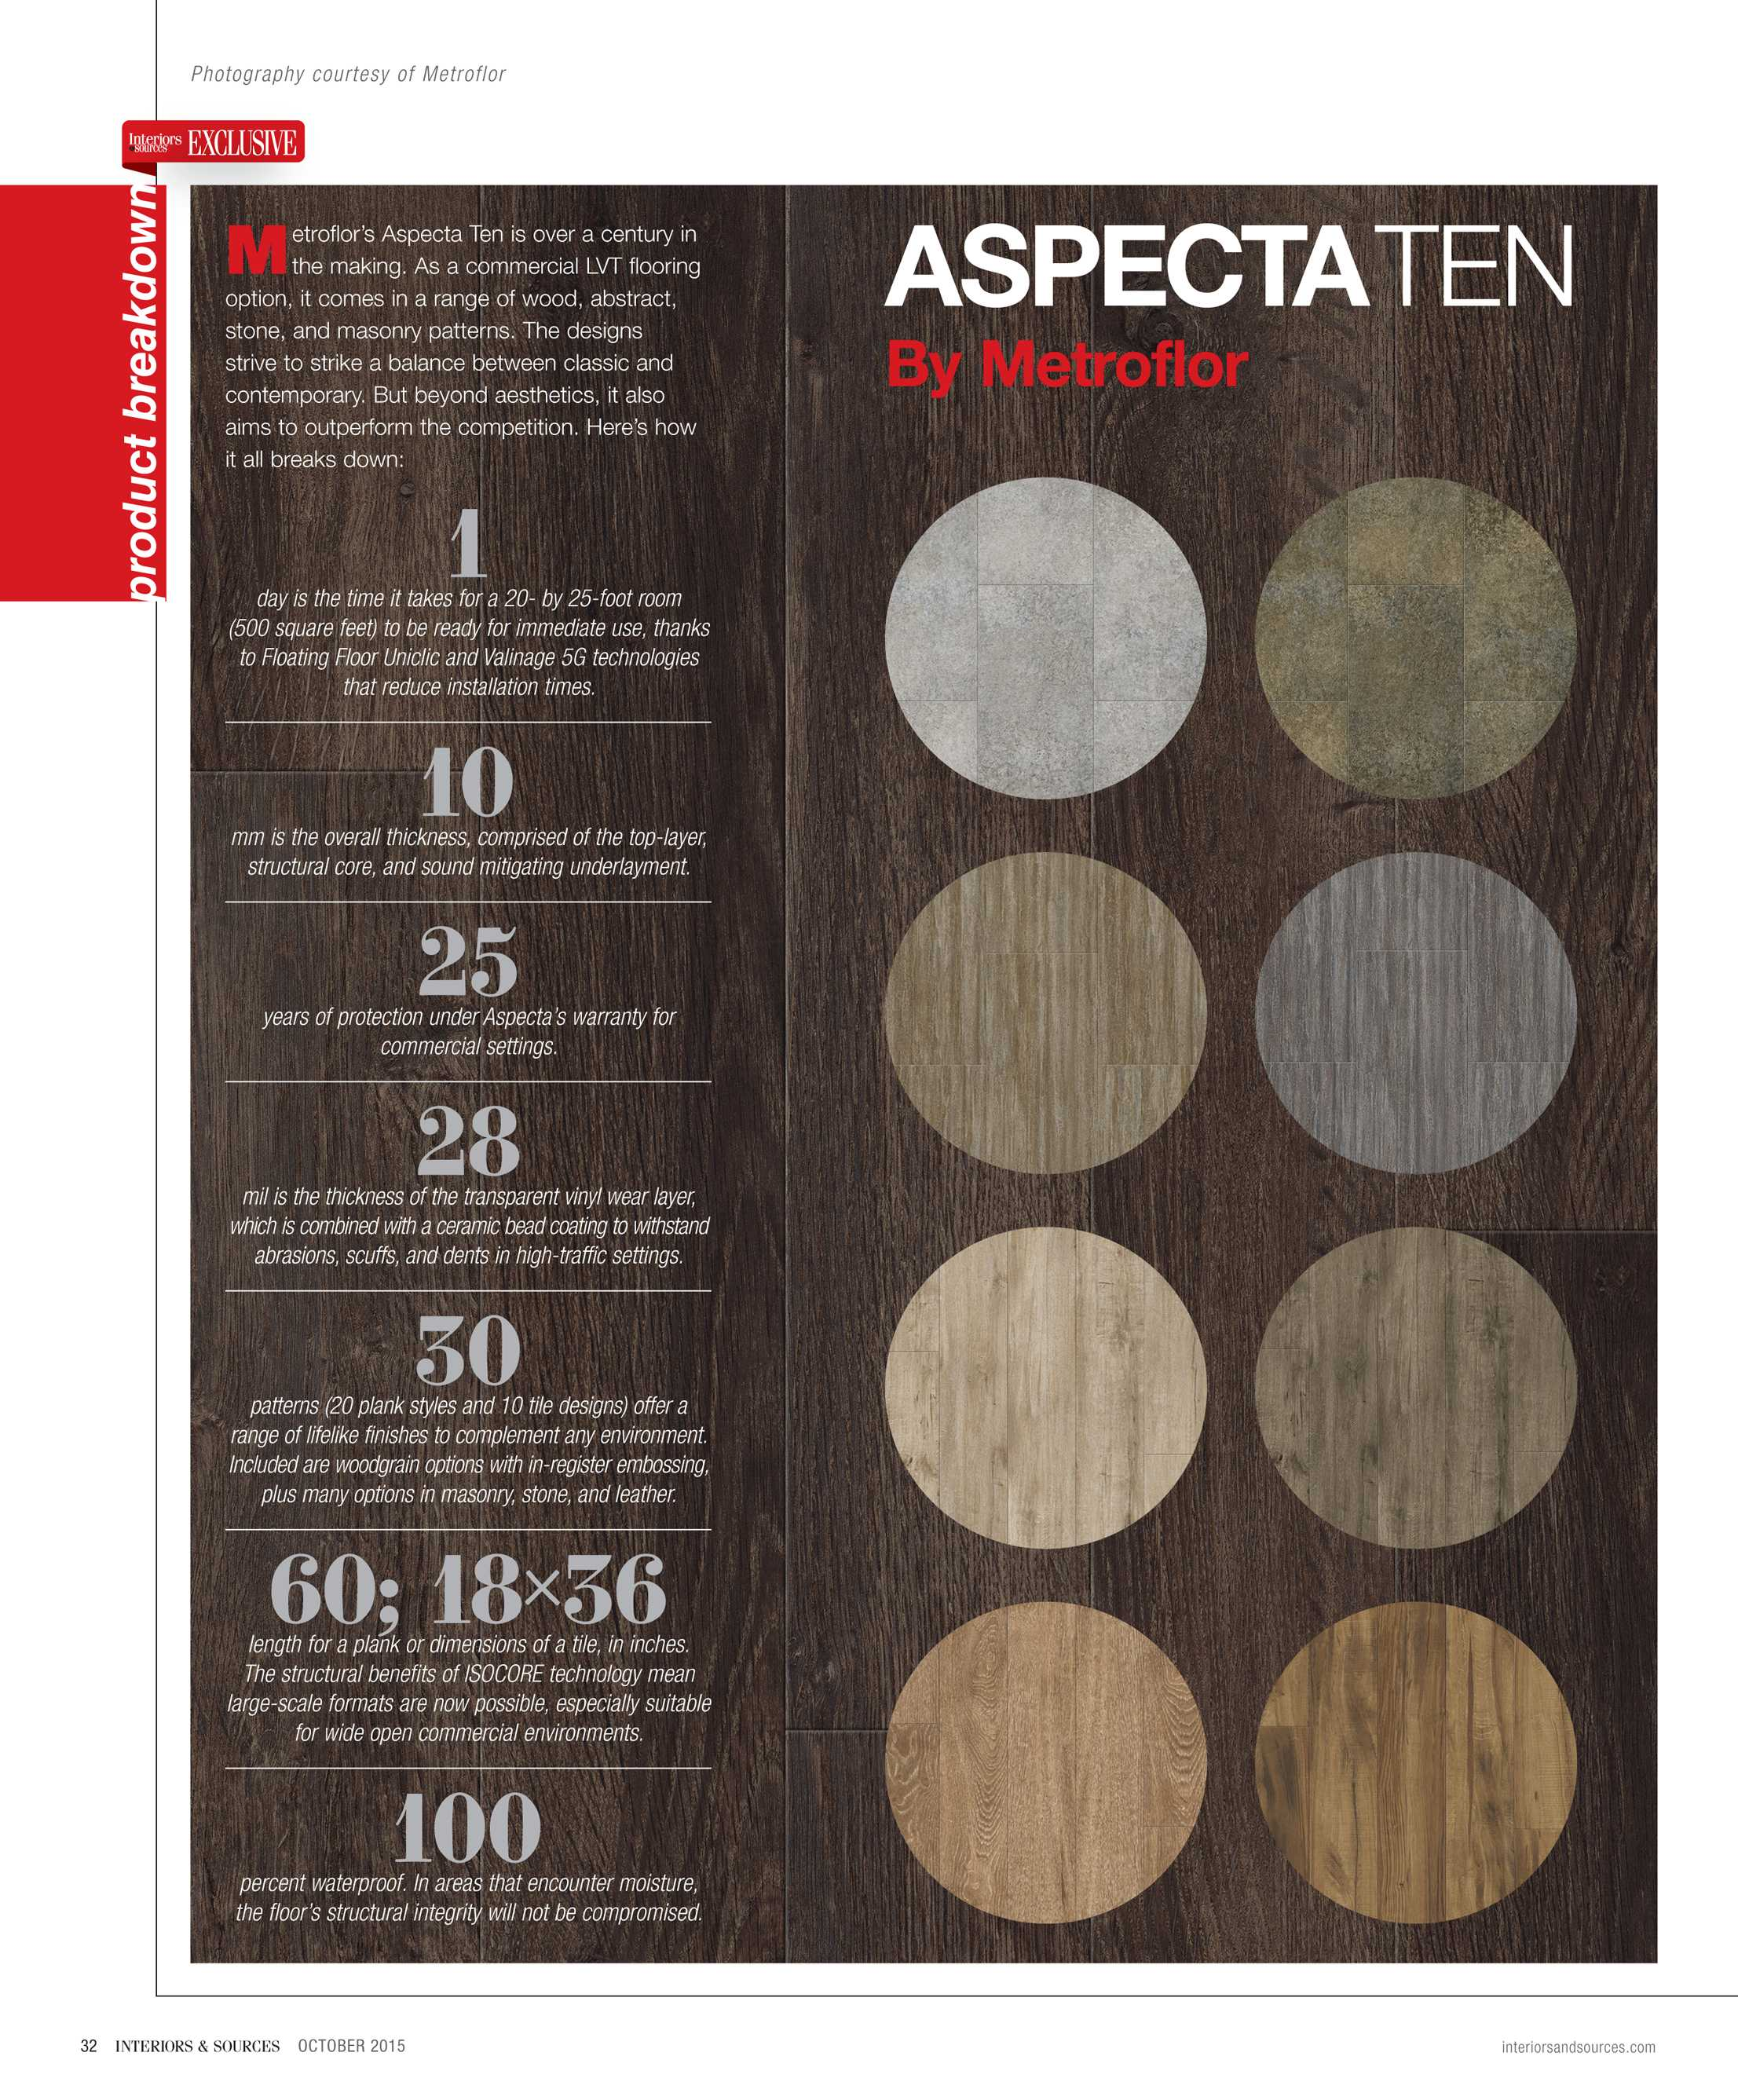 Interiors and Sources - October 2015 - page 32